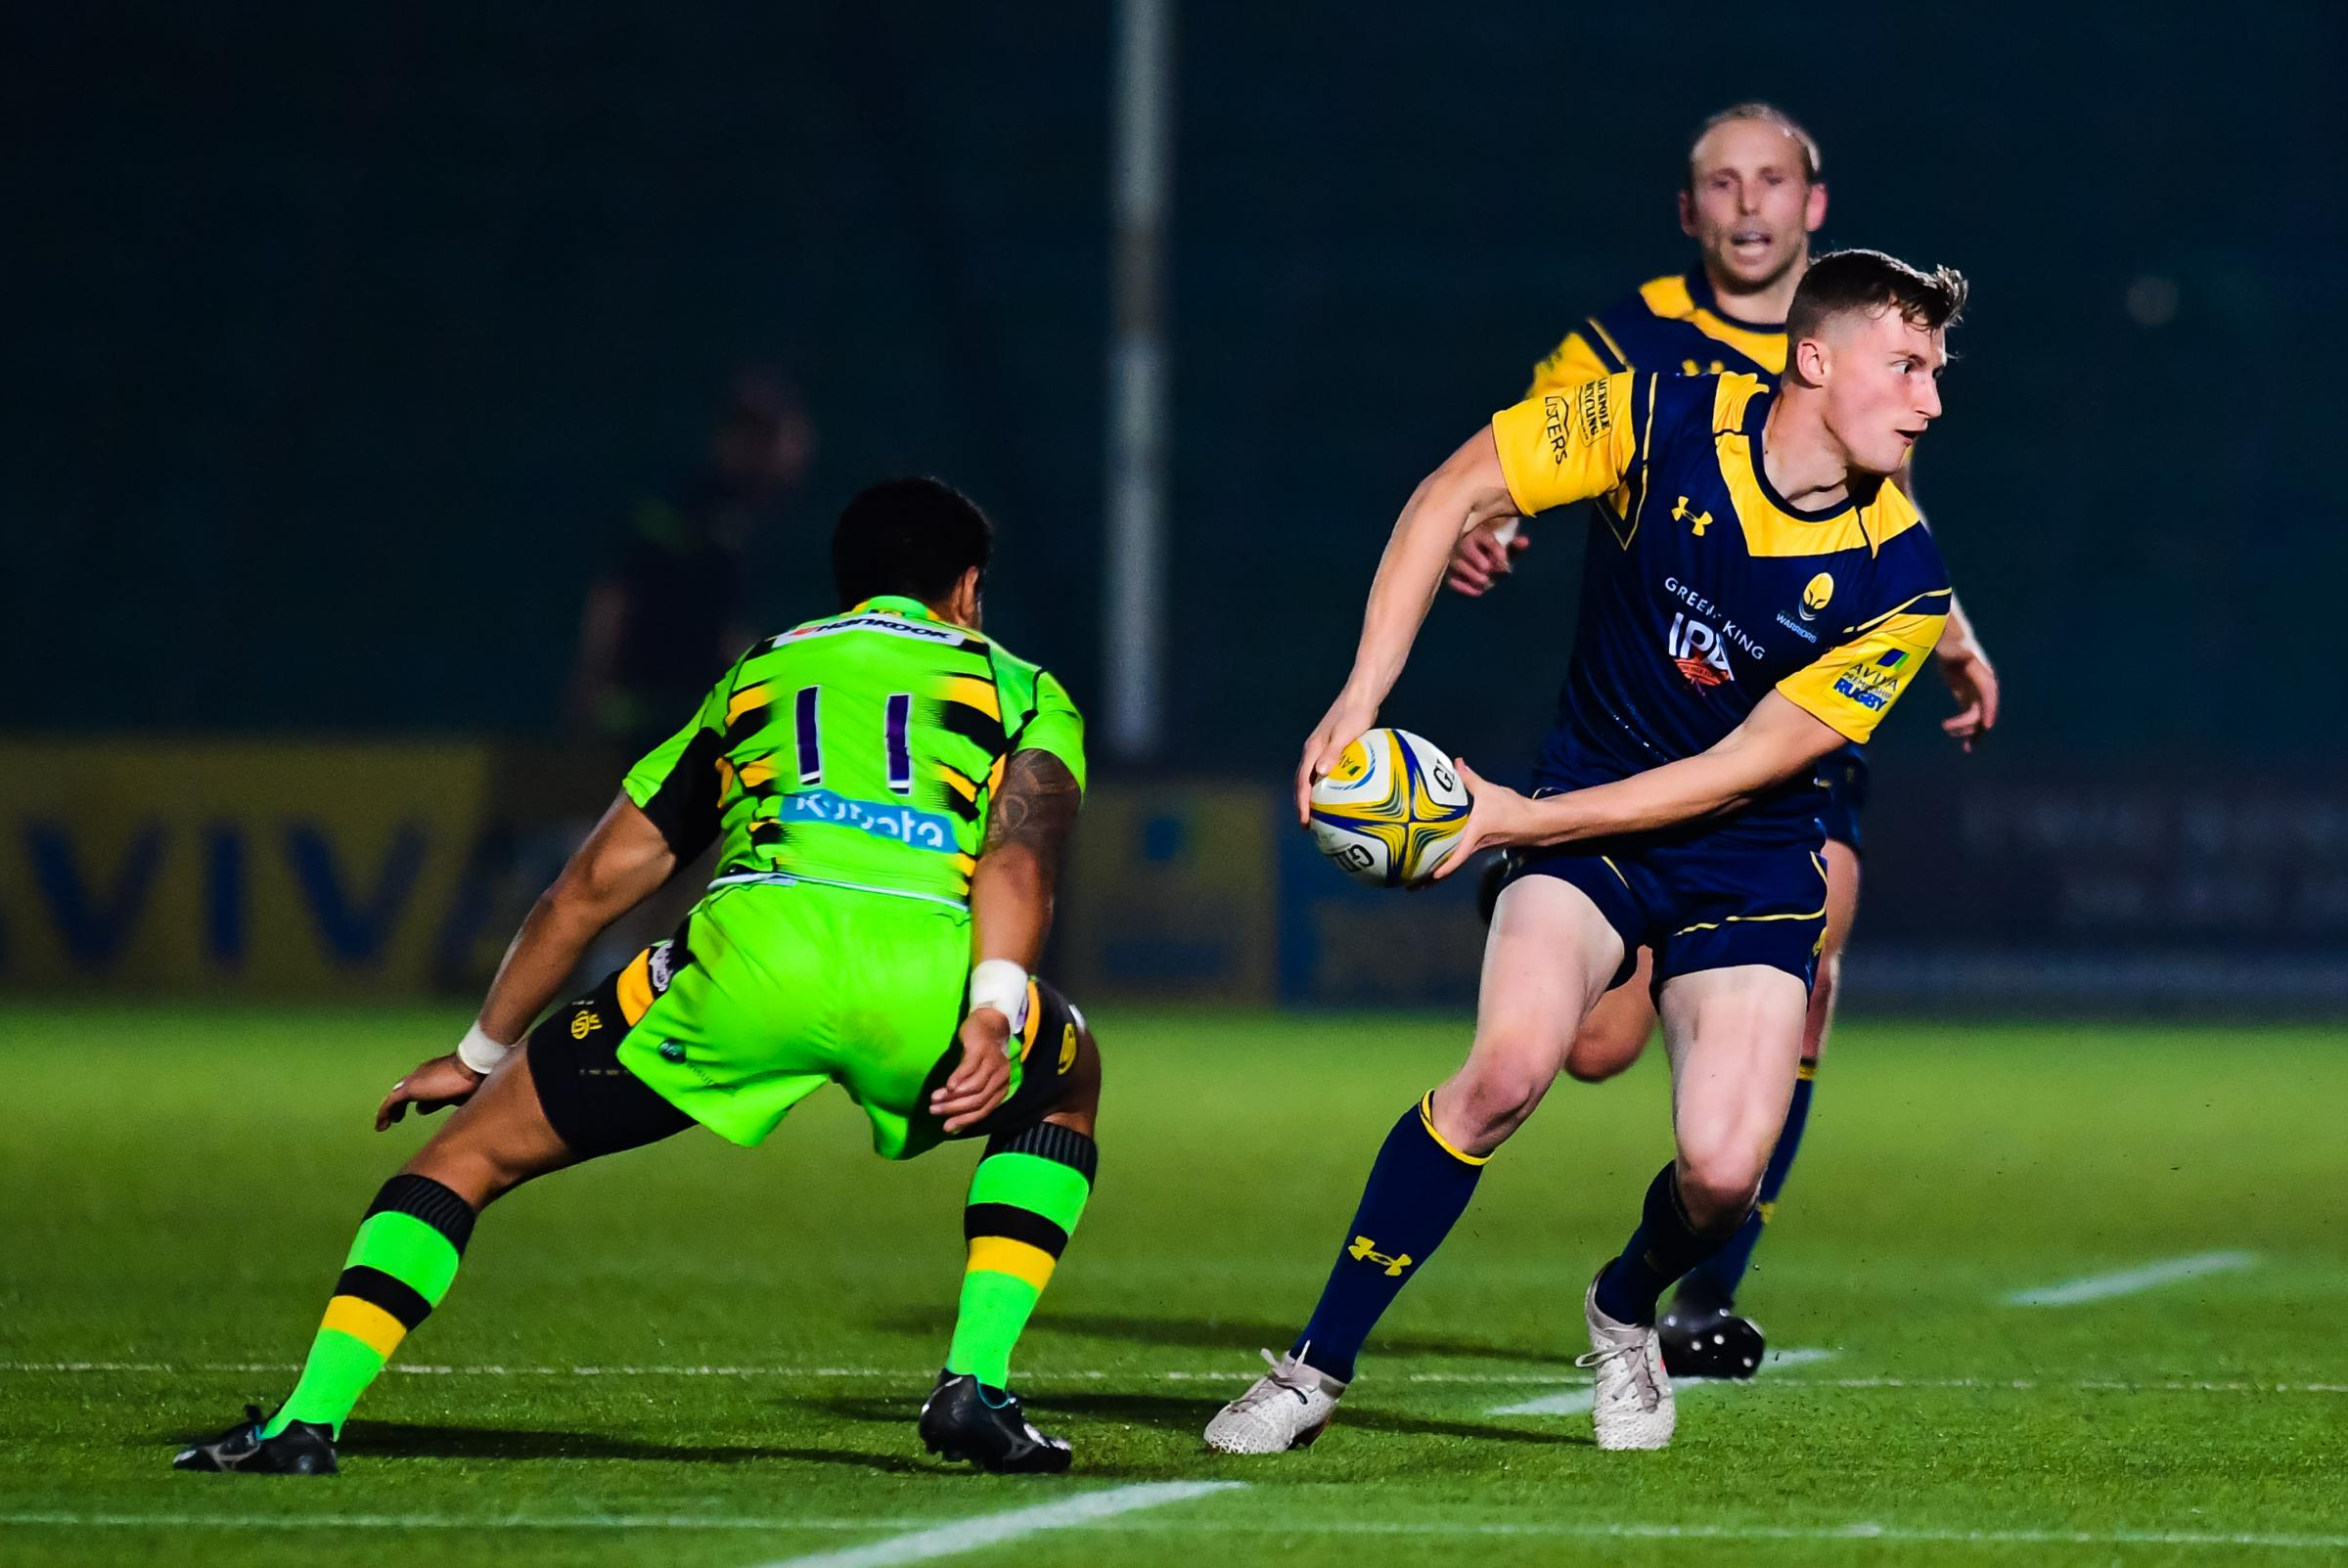 Alex Hearle of Worcester Cavaliers in action - Mandatory by-line: Craig Thomas/JMP - 25/09/2017 - RUGBY - Sixways Stadium - Worcester, England - Worcester Cavaliers v Northampton Wanderers - Aviva A League